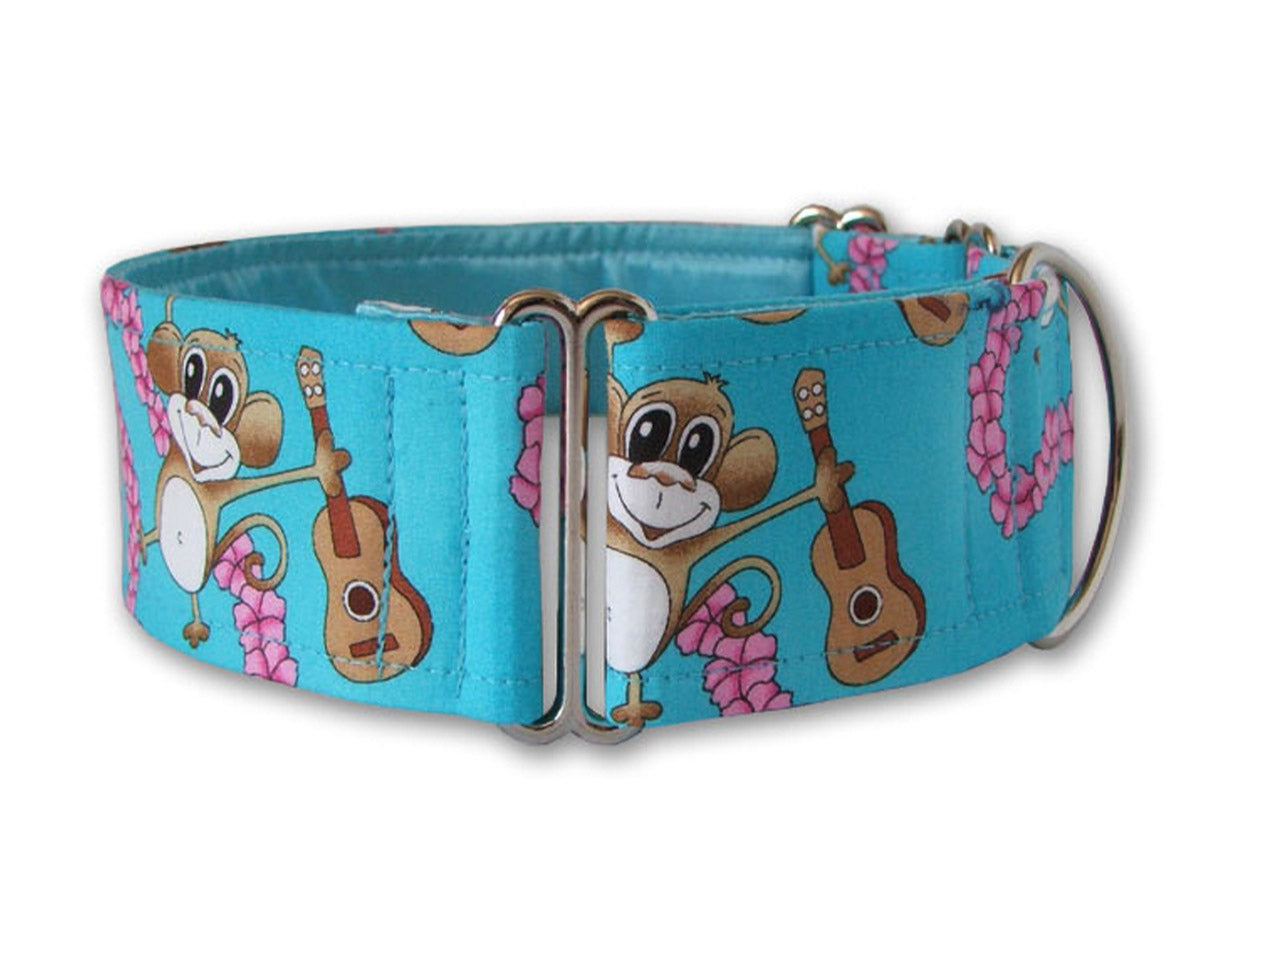 The cheerful ukulele-playing chimp on this bright blue collar will help your pup get his aloha on!